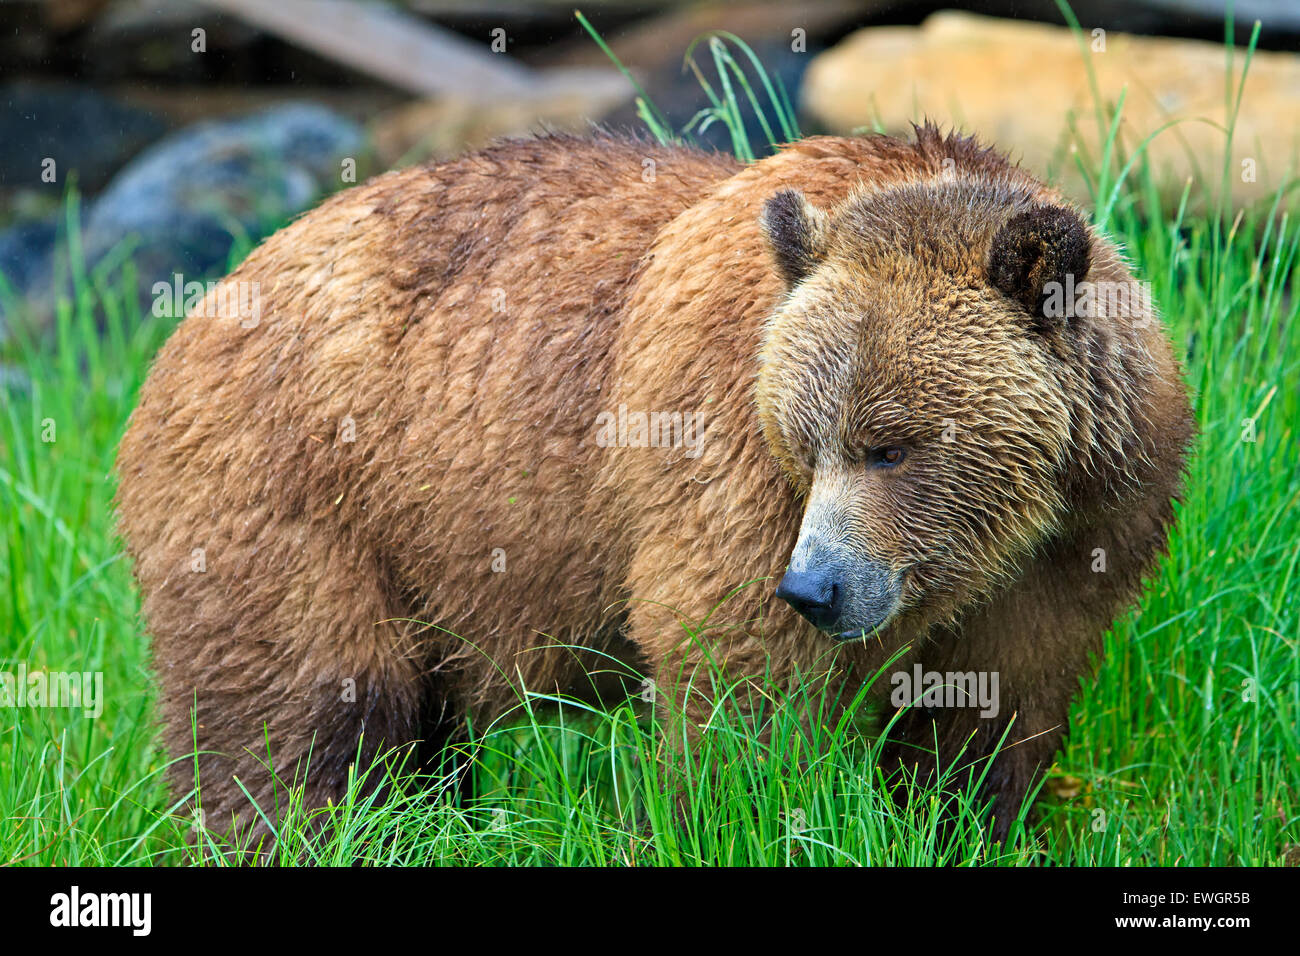 Coastal Grizzly bear foraging on a rainy day along the coast of British Columbia, Canada - Stock Image